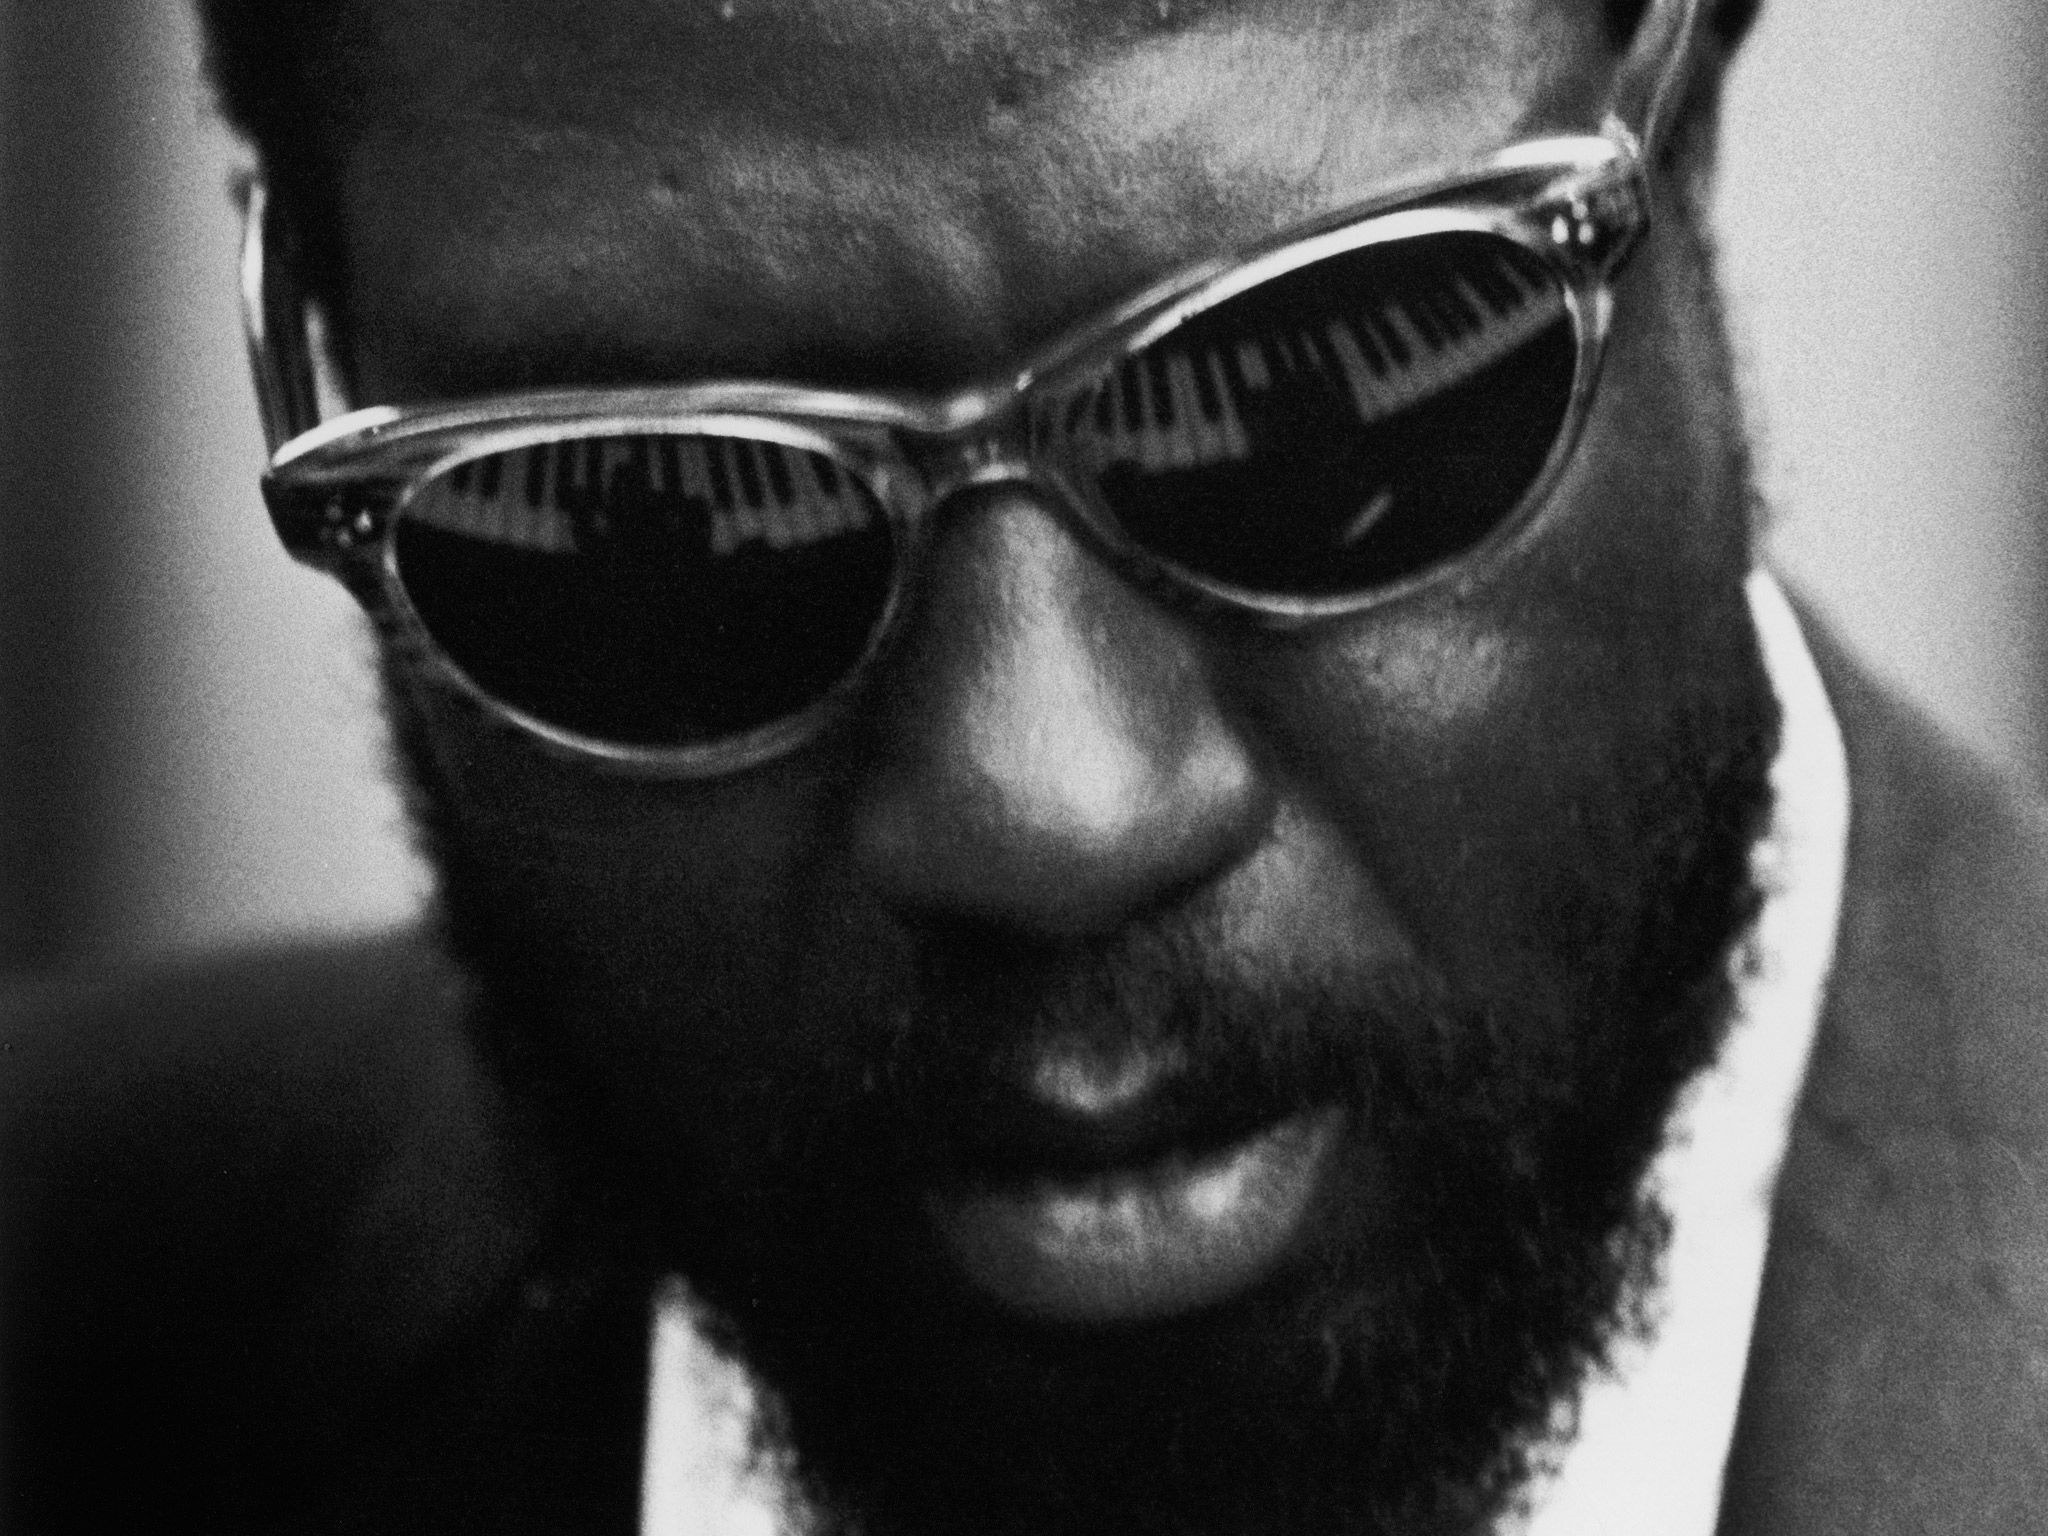 Nine-day festival to celebrate Thelonious Monk in Birmingham, U.K., on June 12-20